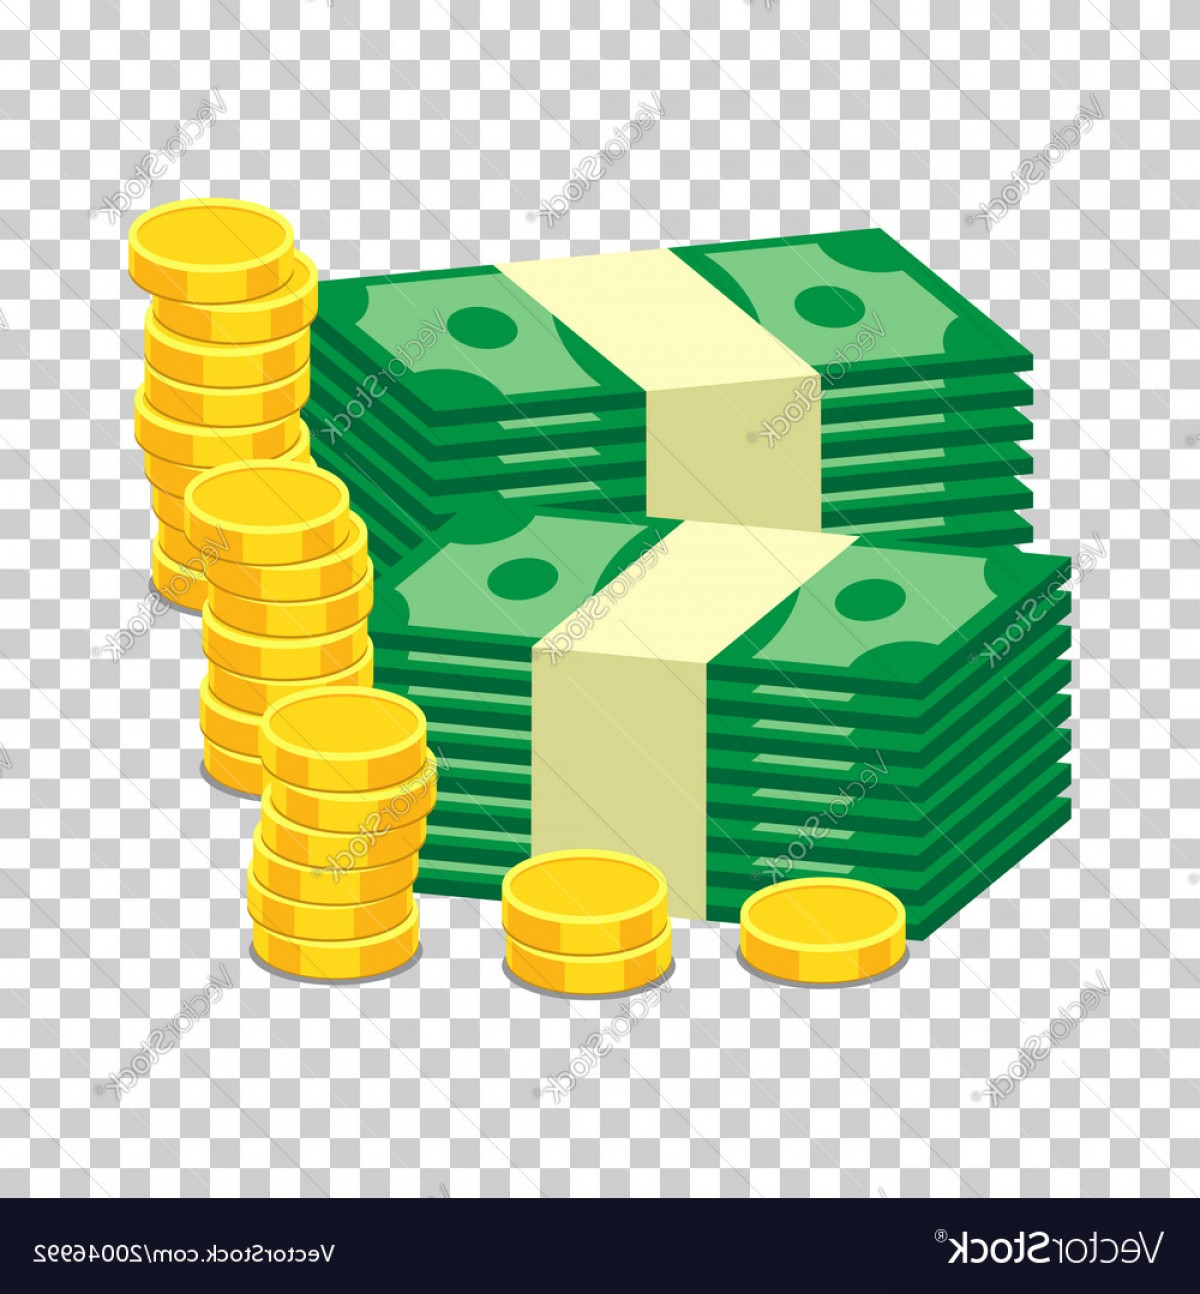 Hundreds Of Money Stacks Vector: Stacks Of Gold Coins And Stacks Of Dollar Cash In Vector